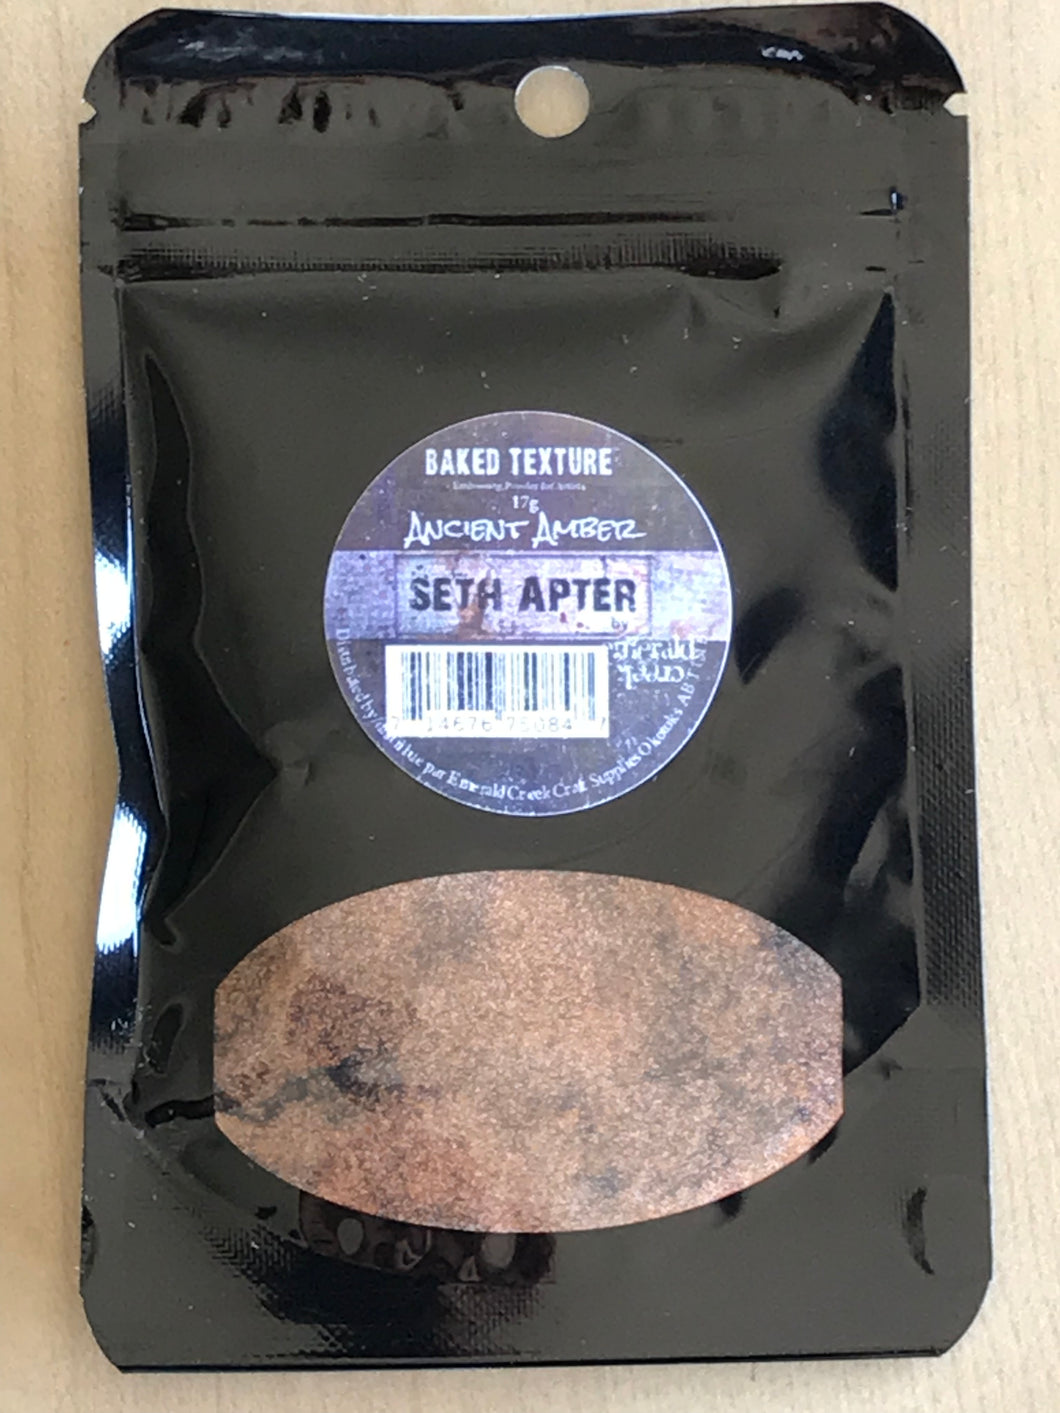 Seth Apter - Ancient Amber Baked Texture embossing powder